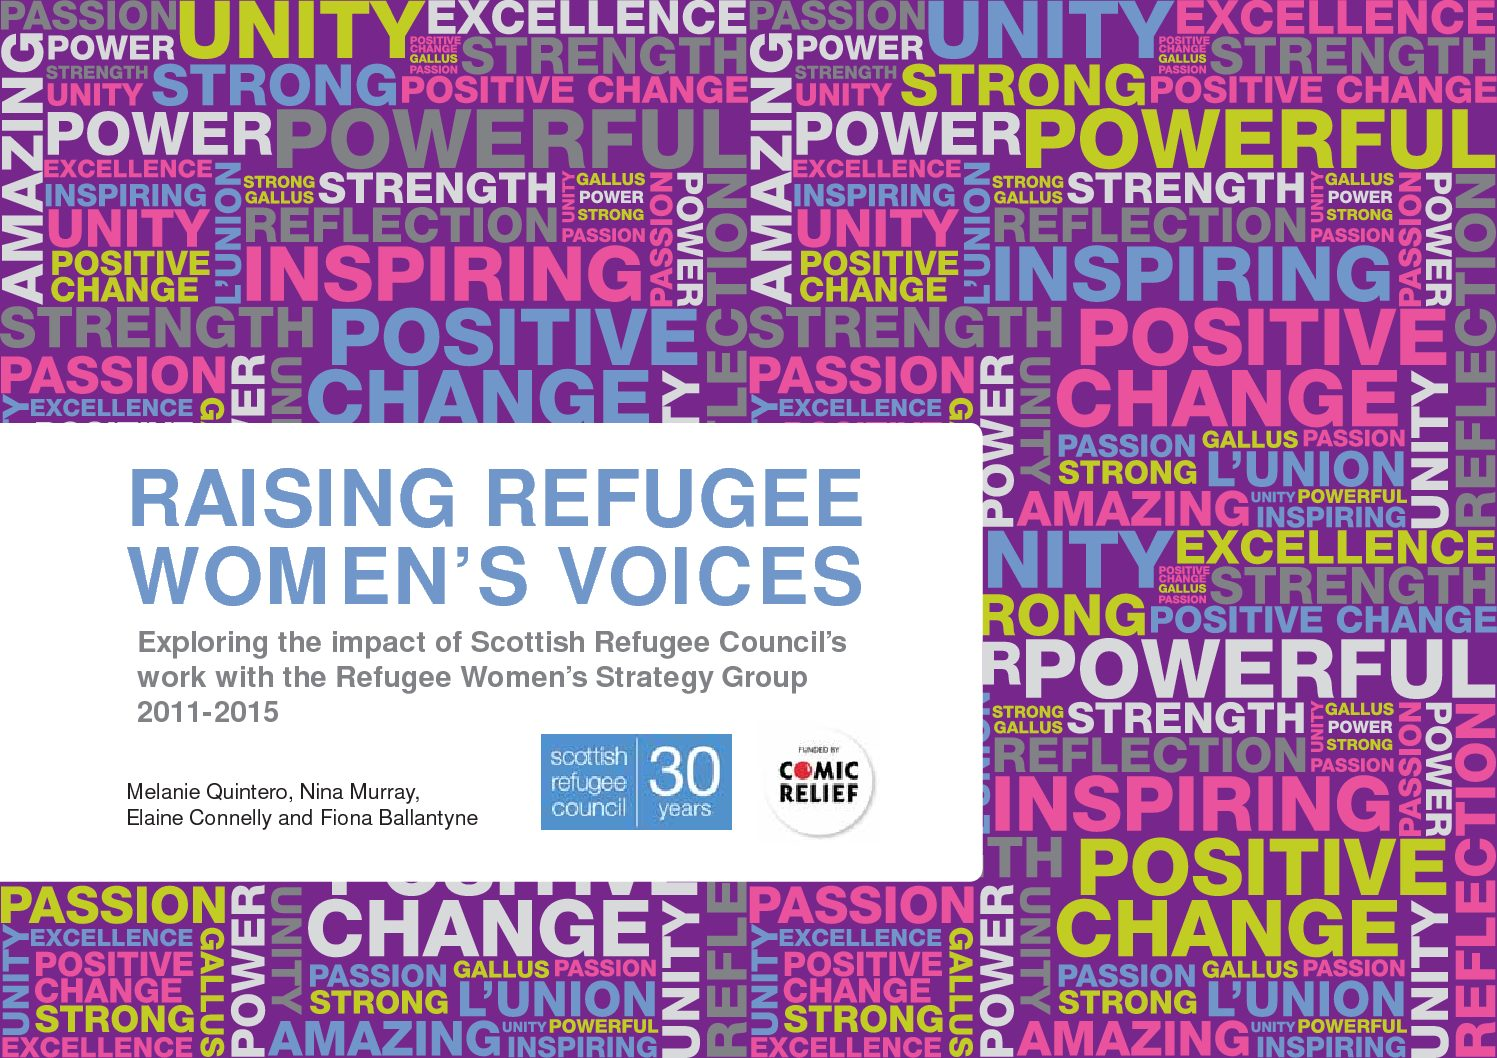 Scottish-Refugee-Council_s-Women_s-Project-Impact-Report-pdf